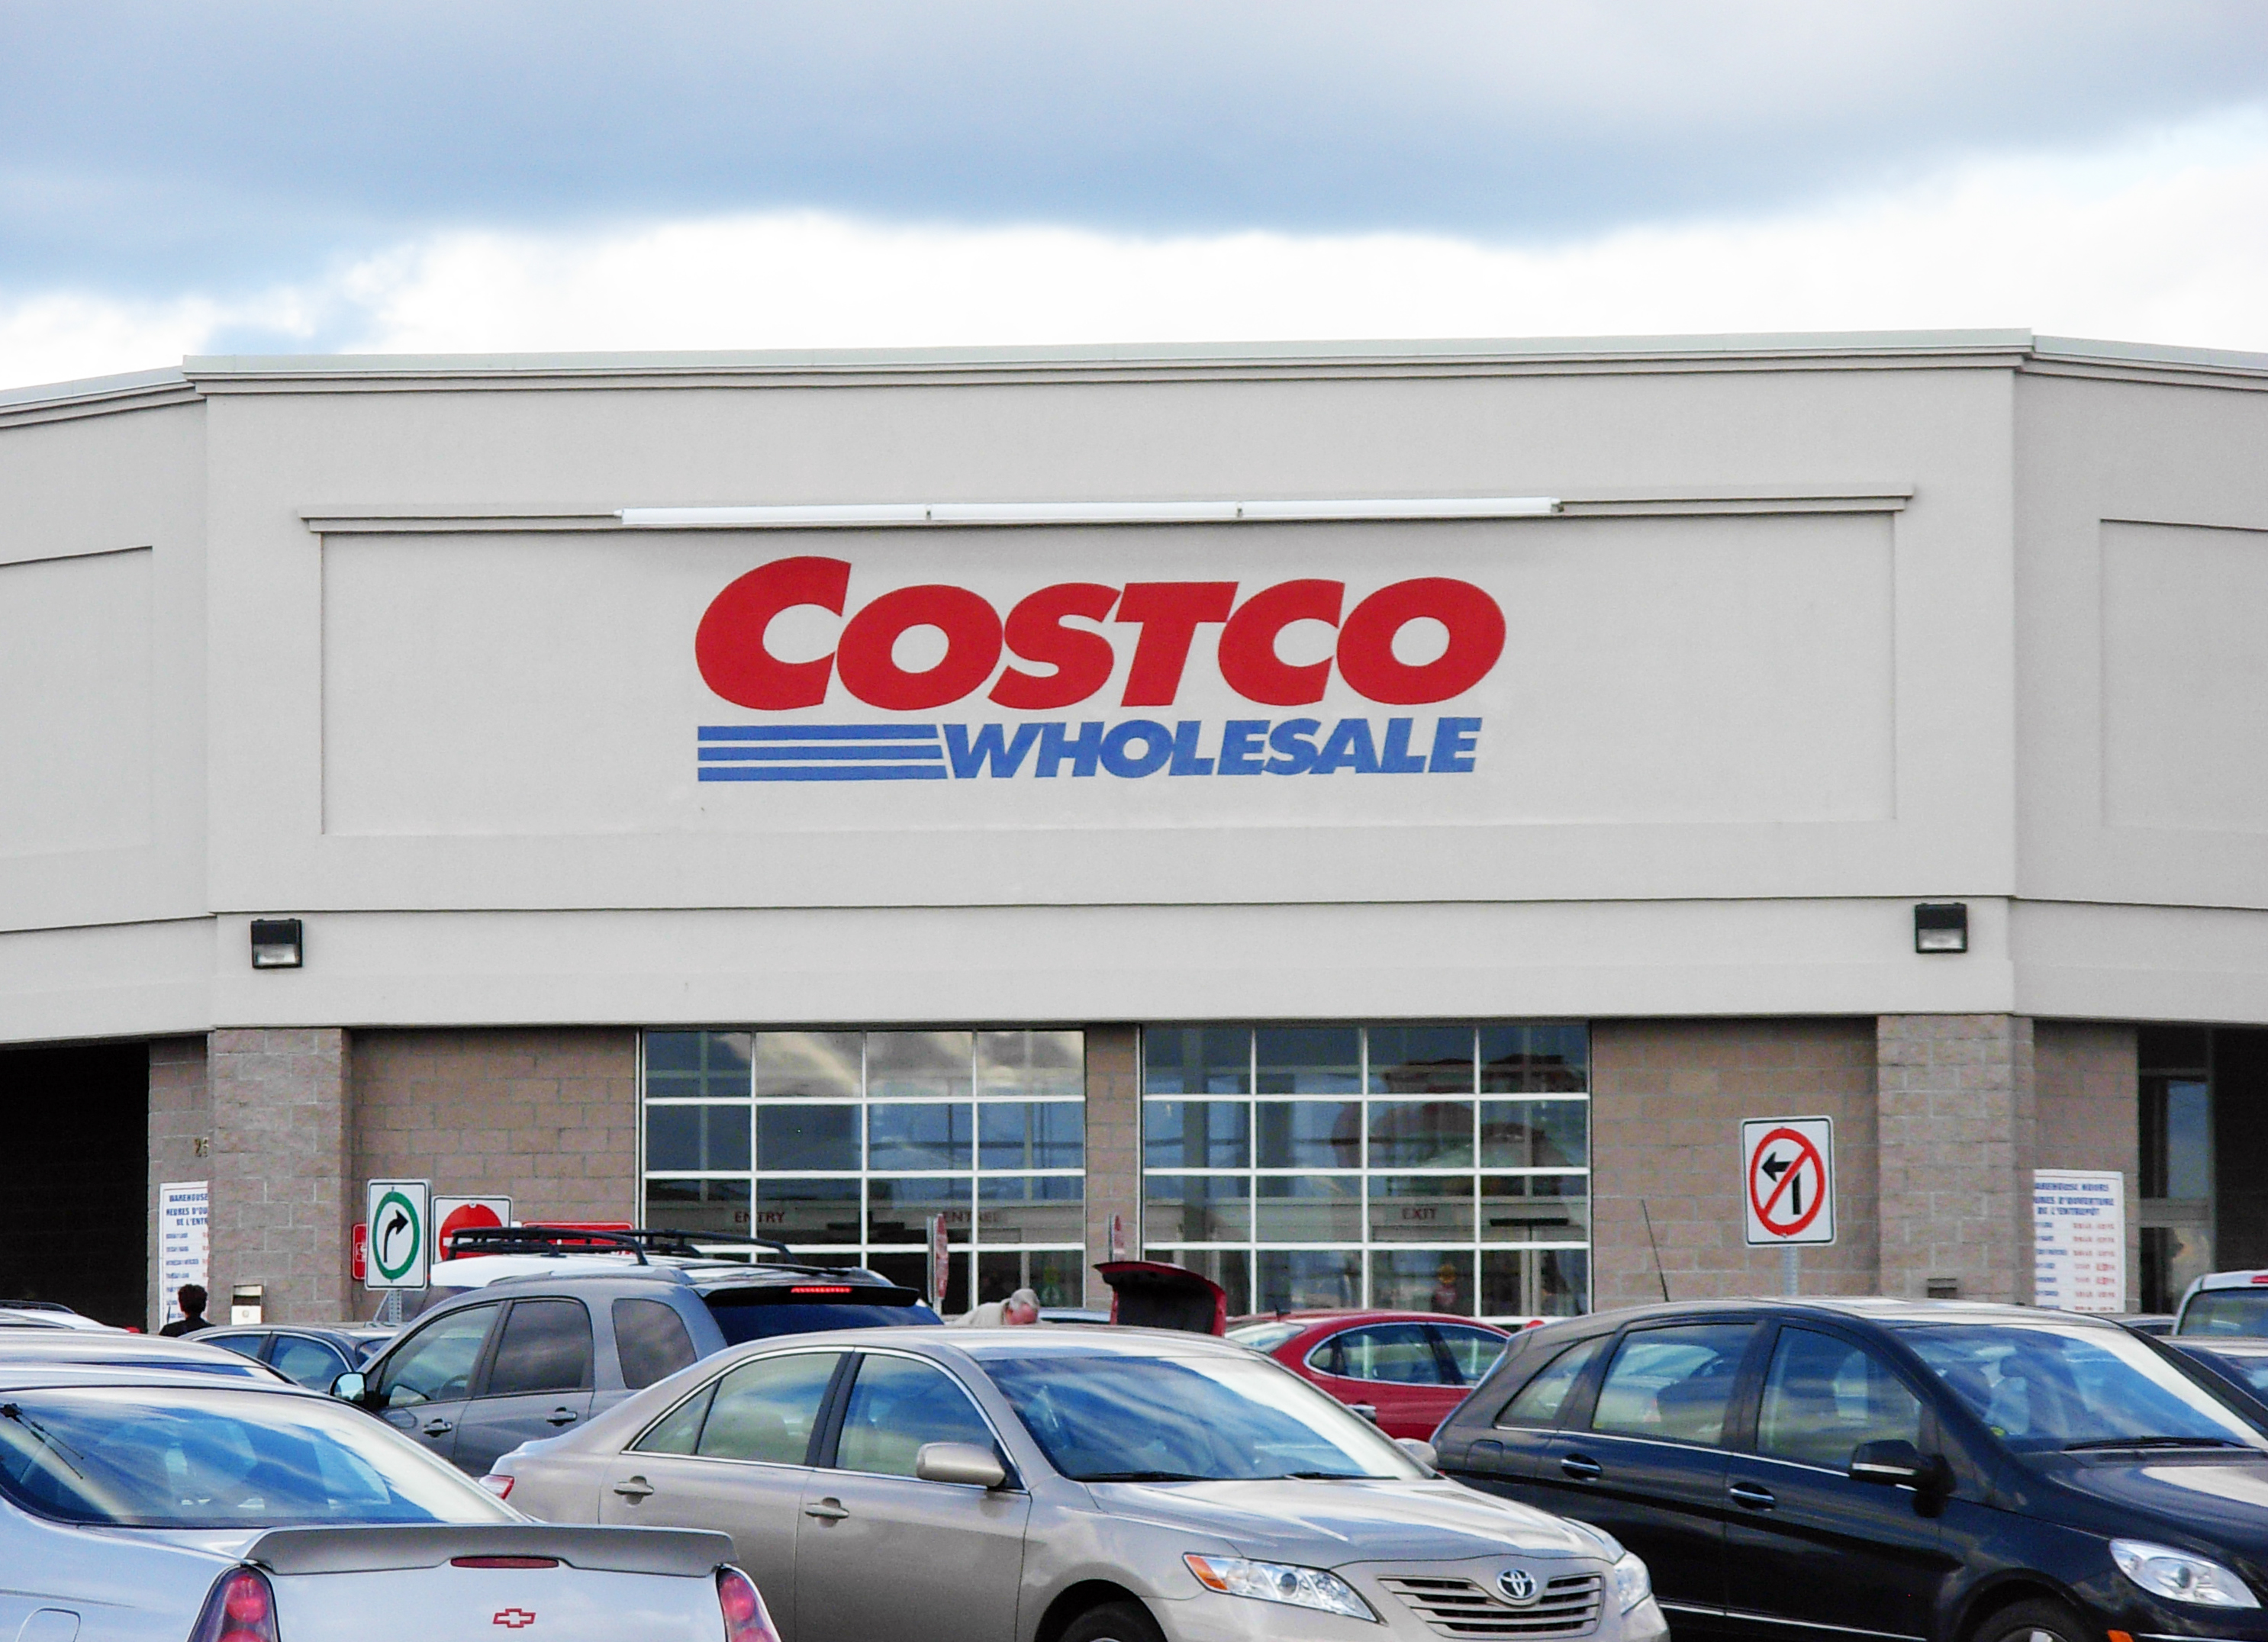 Costco Development Getting Closer to Breaking Ground